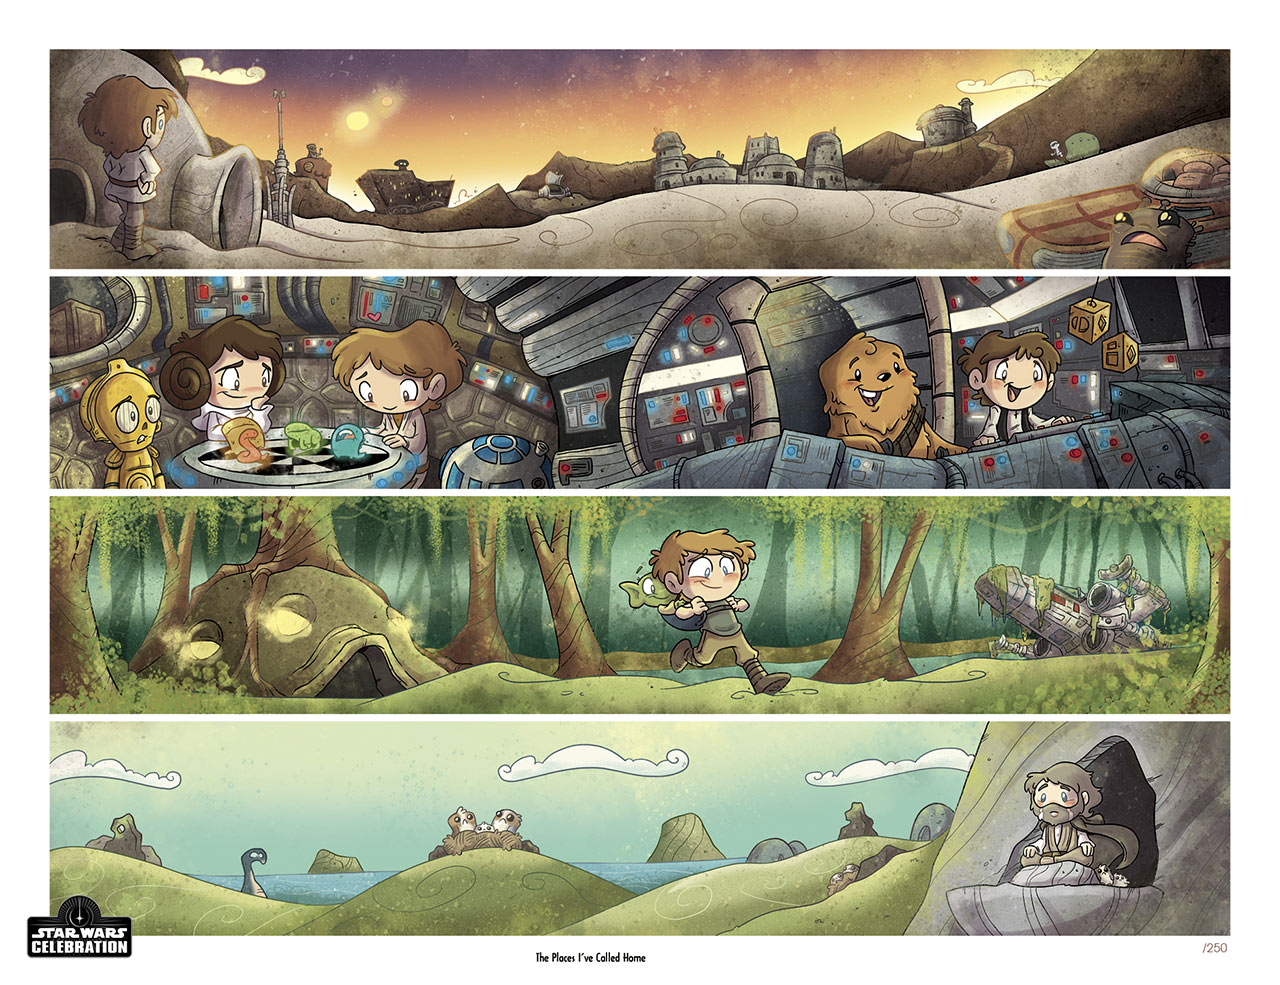 Star Wars Celebration 2020 Art Show: The Places I've Called Home